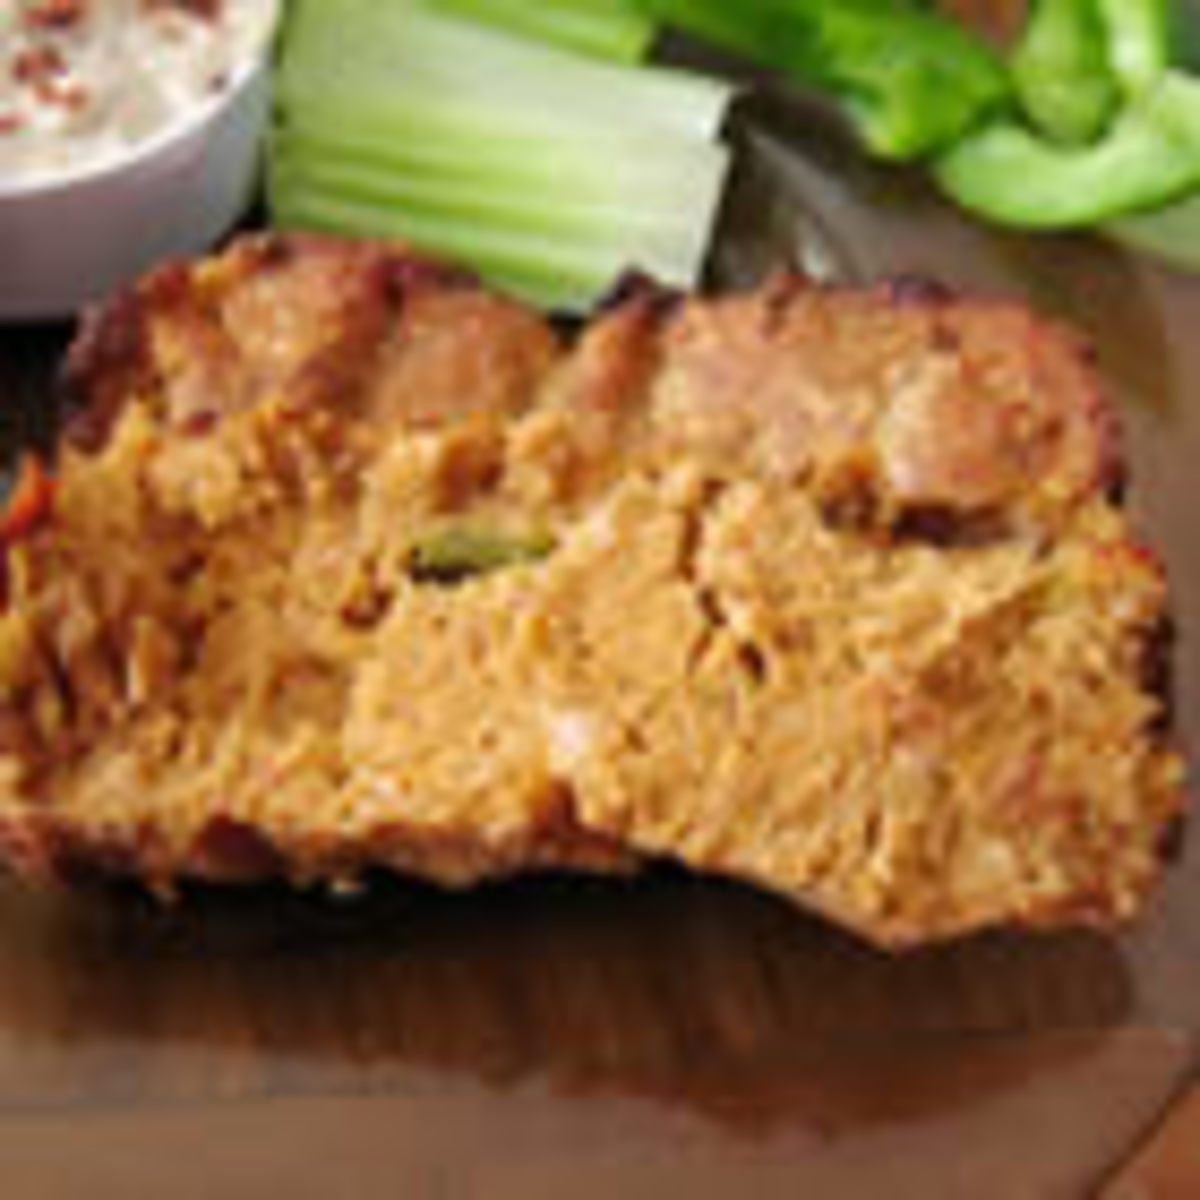 Easy Meat Loaf Recipes: Meatloaf Cooking Procedure & Ingredients